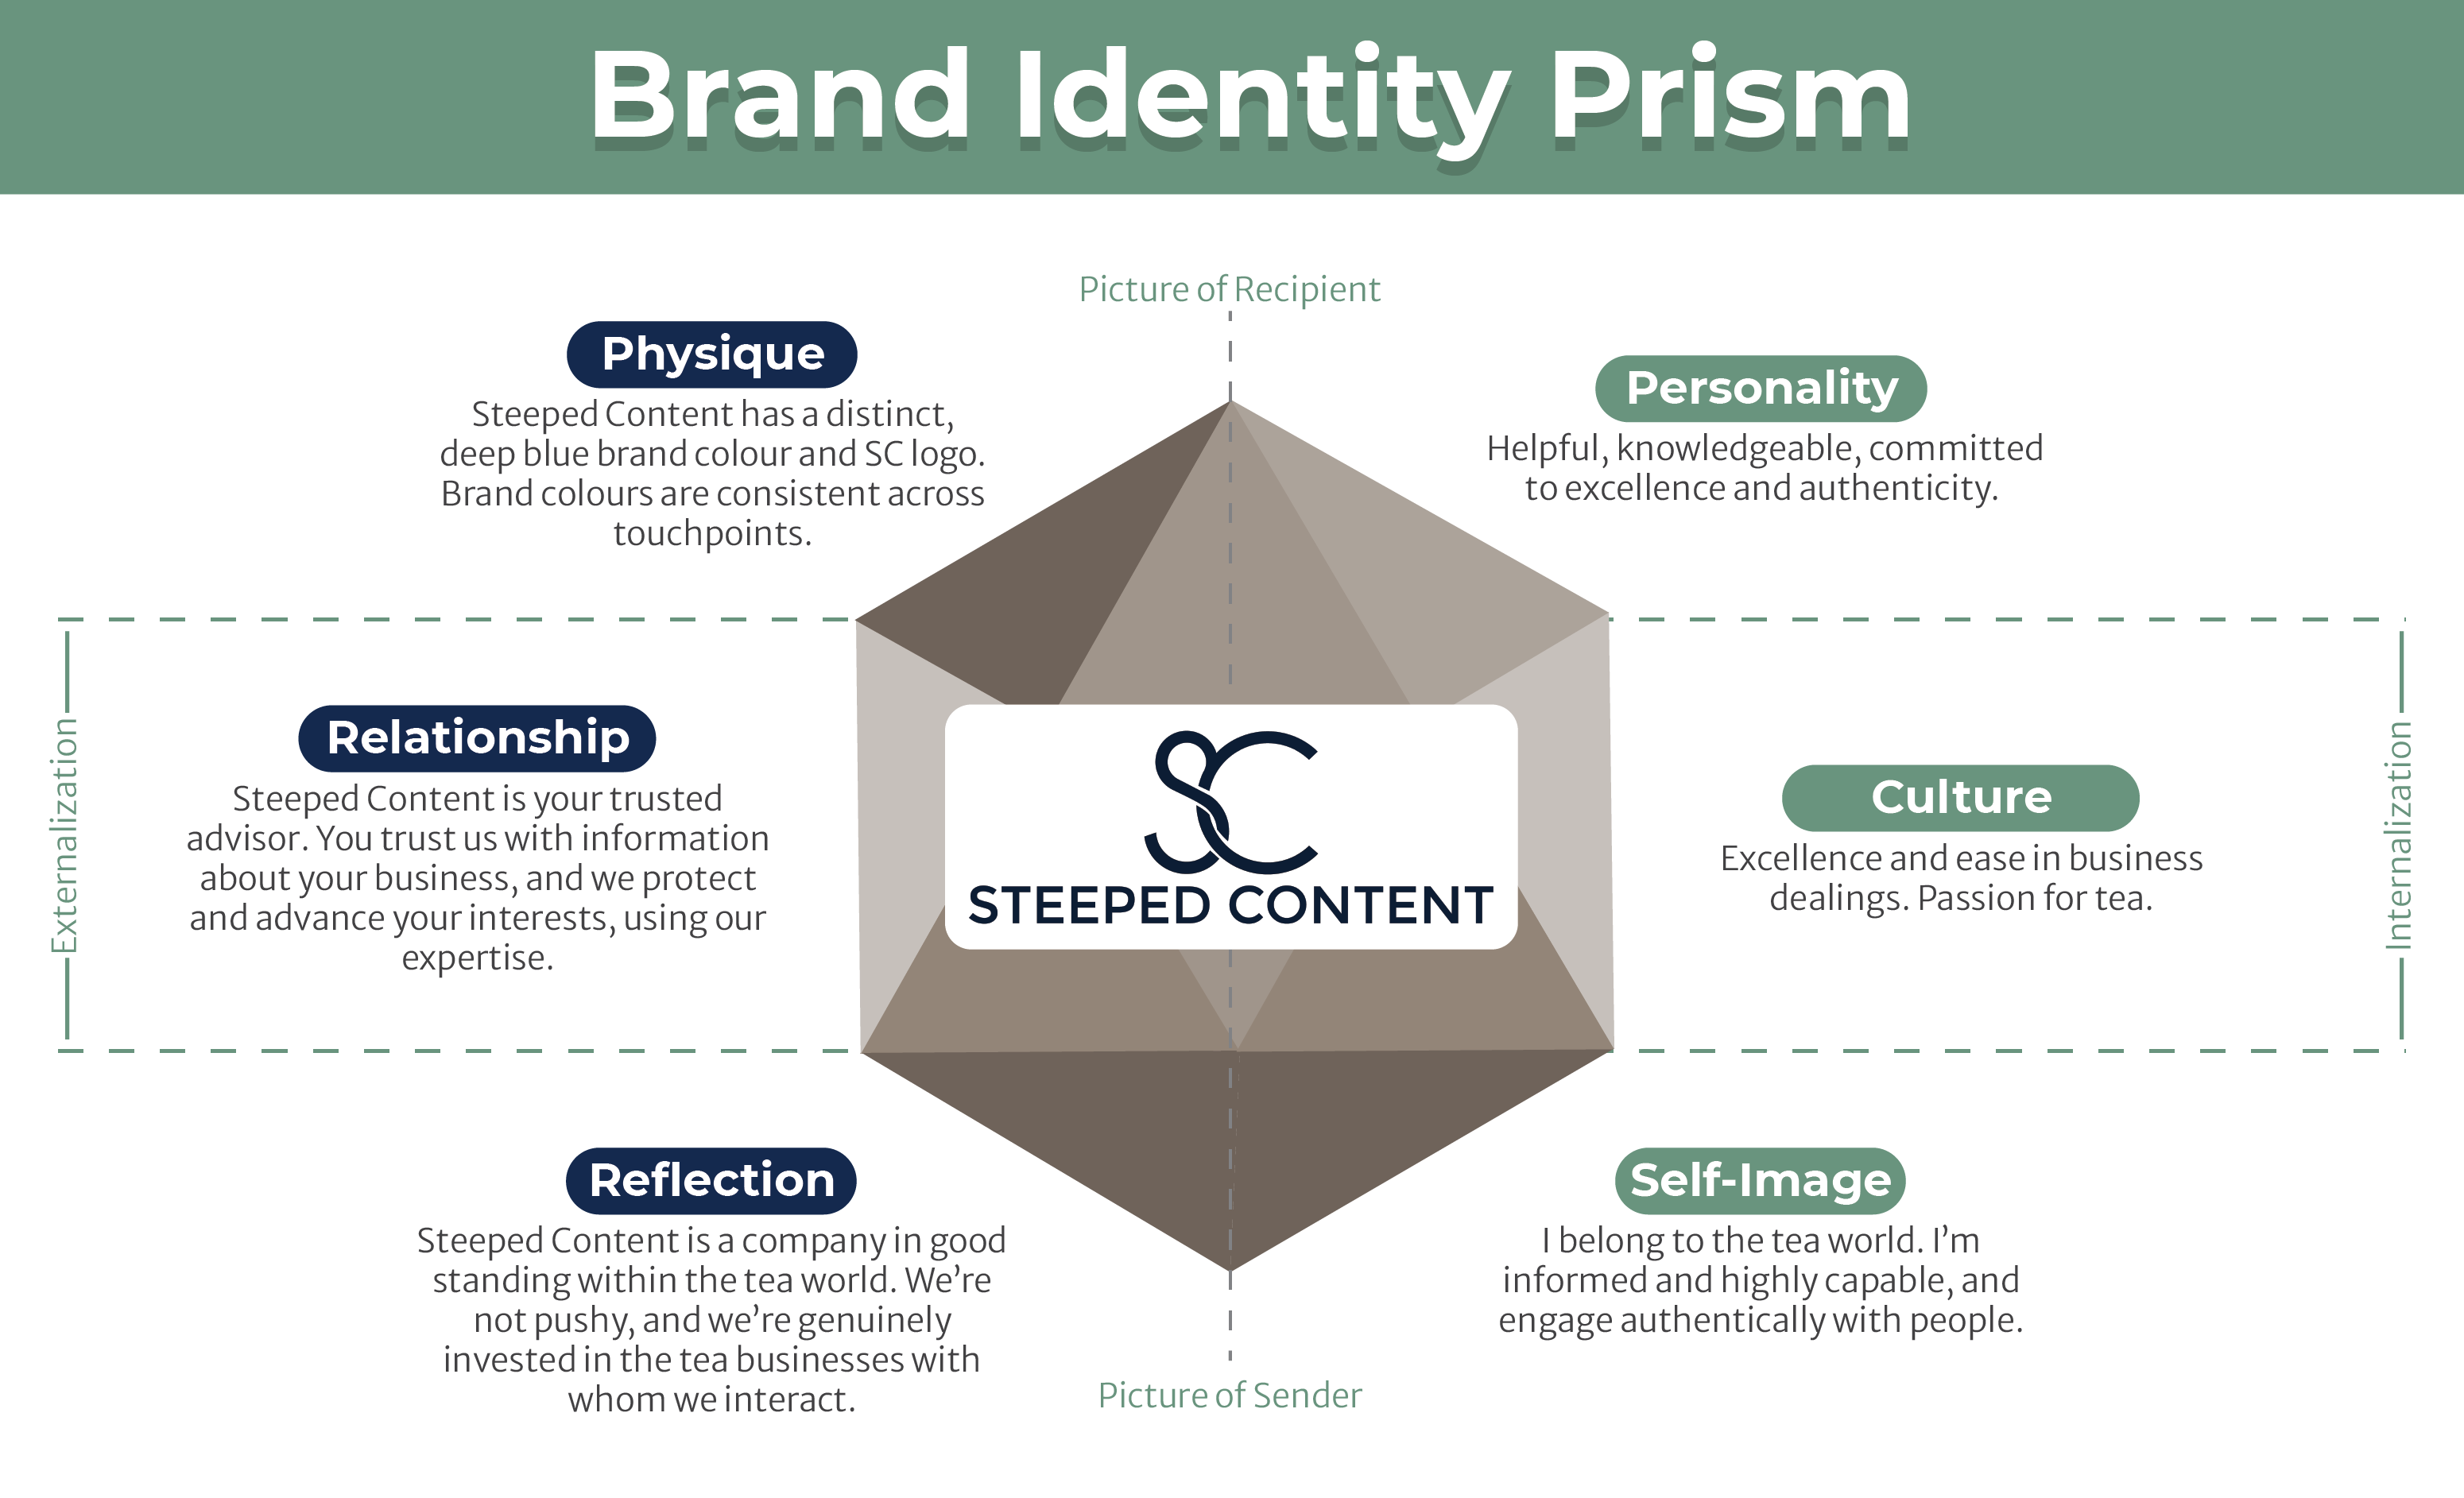 Kapferer's Brand Identity Prism for Steeped Content; it has: physique, relationship, reflection, personality, culture, self image